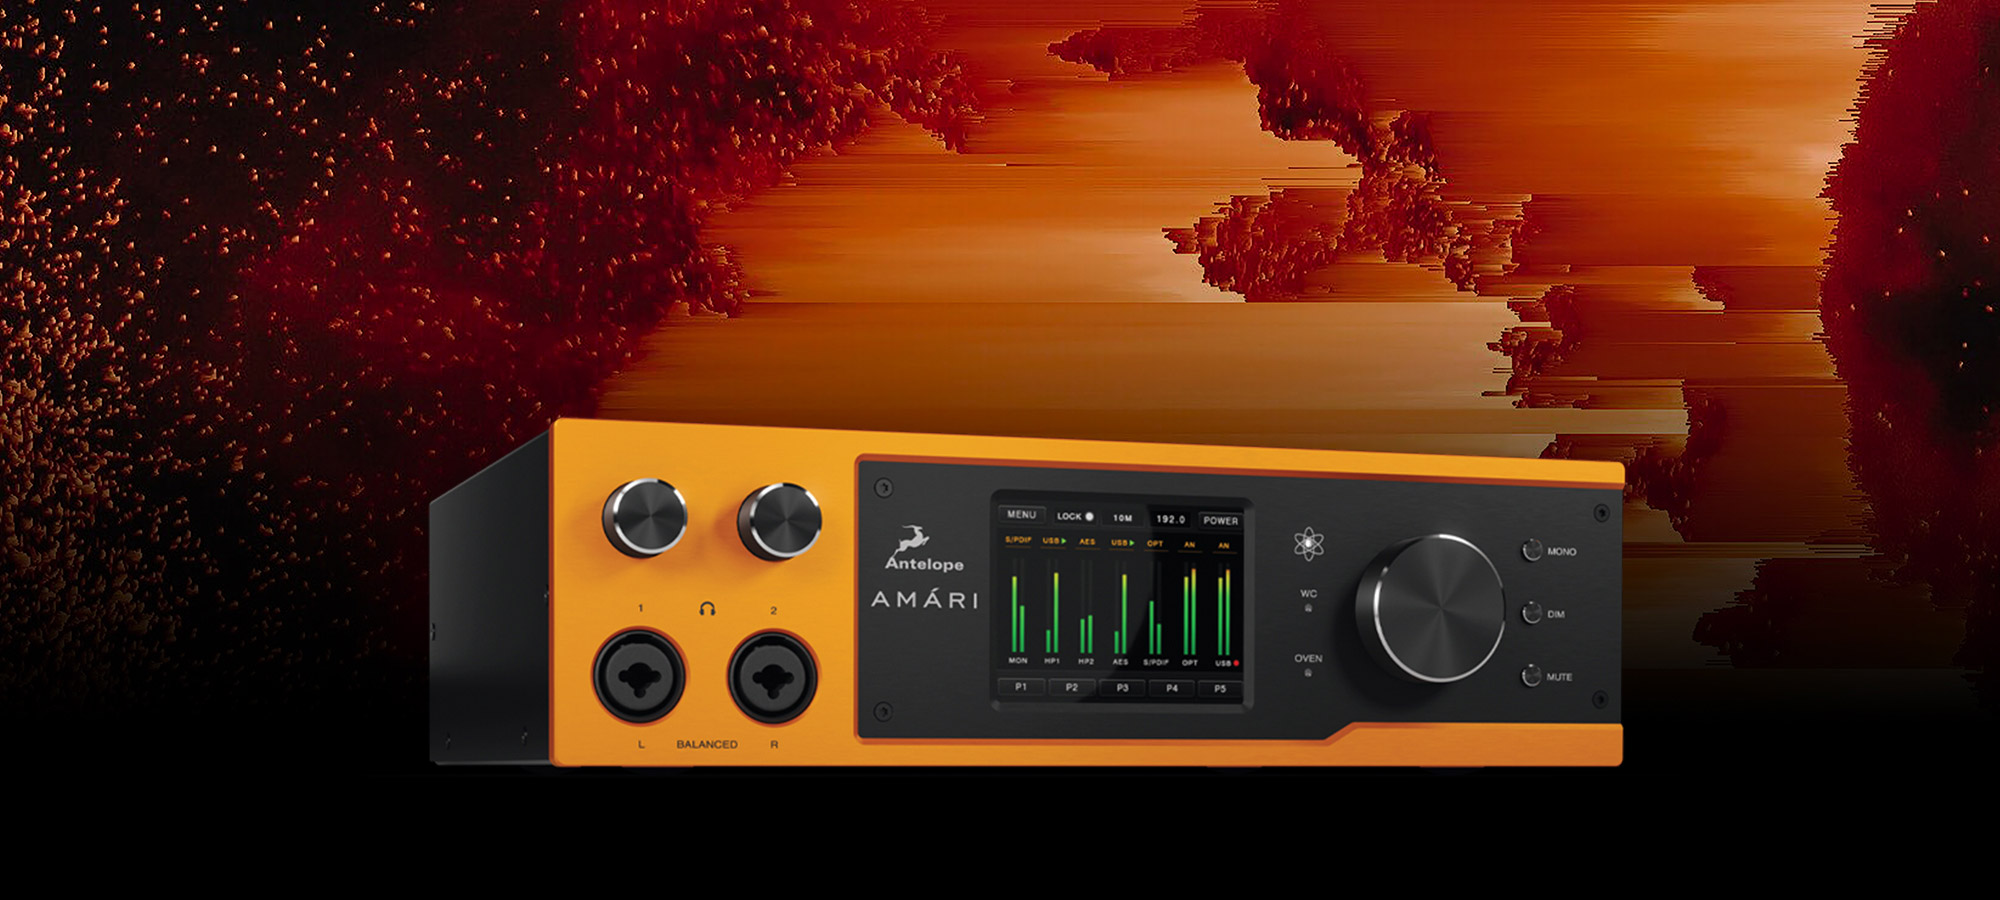 AMÁRI advances Antelope's audiophile conversion capability with 24-bit/384 kHz AD/DA and unique headphone system.